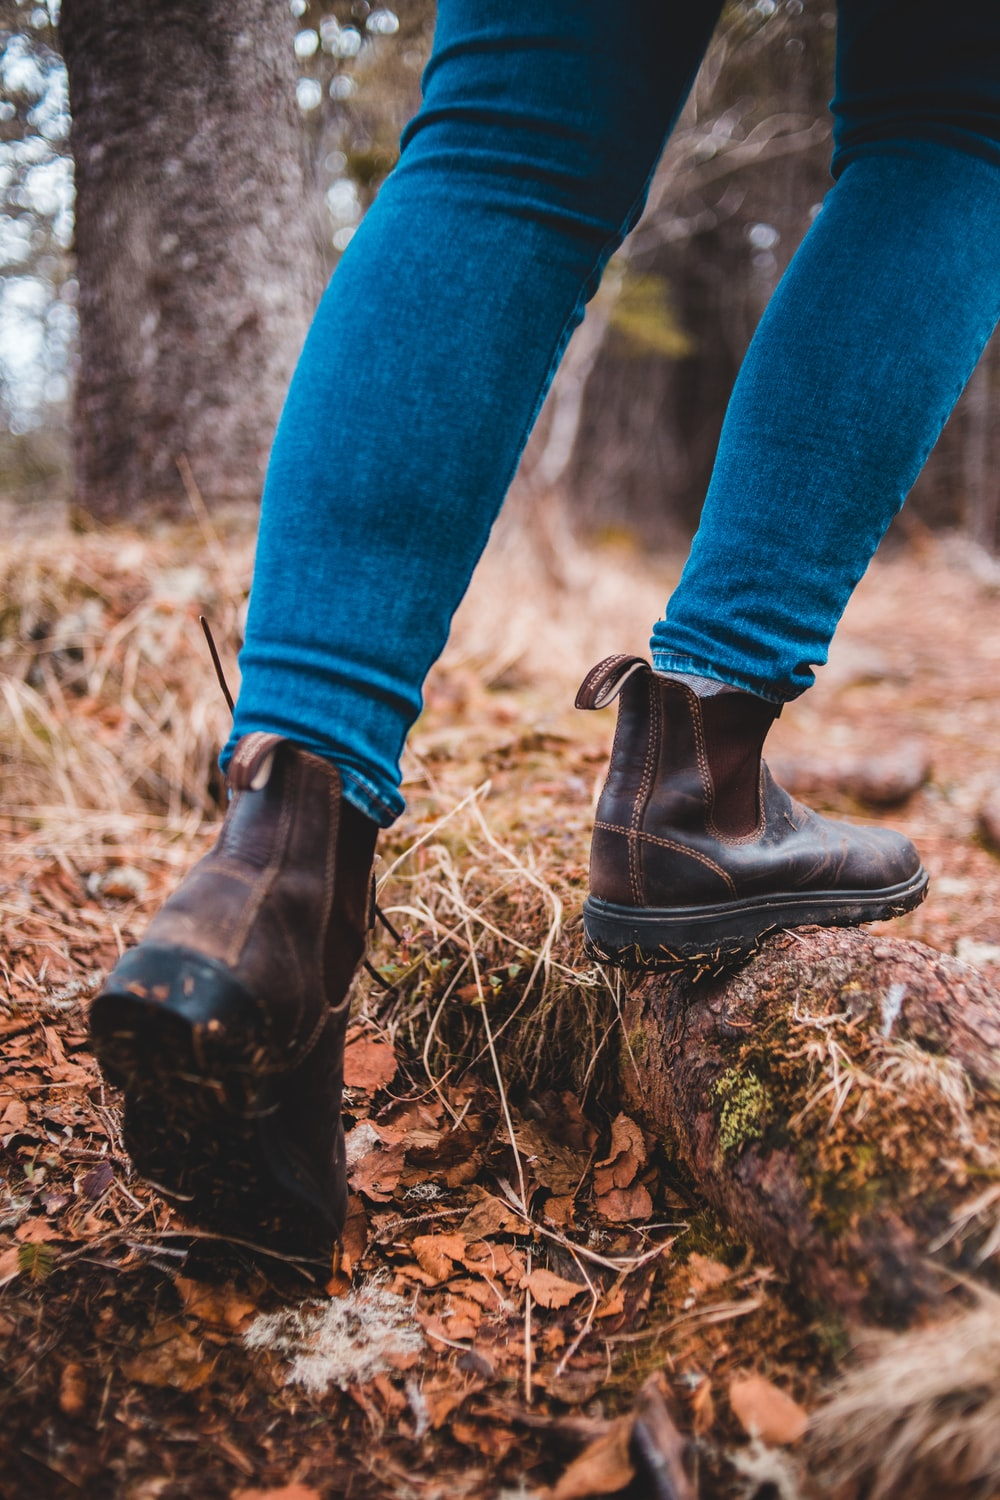 person in blue denim jeans and black leather boots standing on brown dried leaves